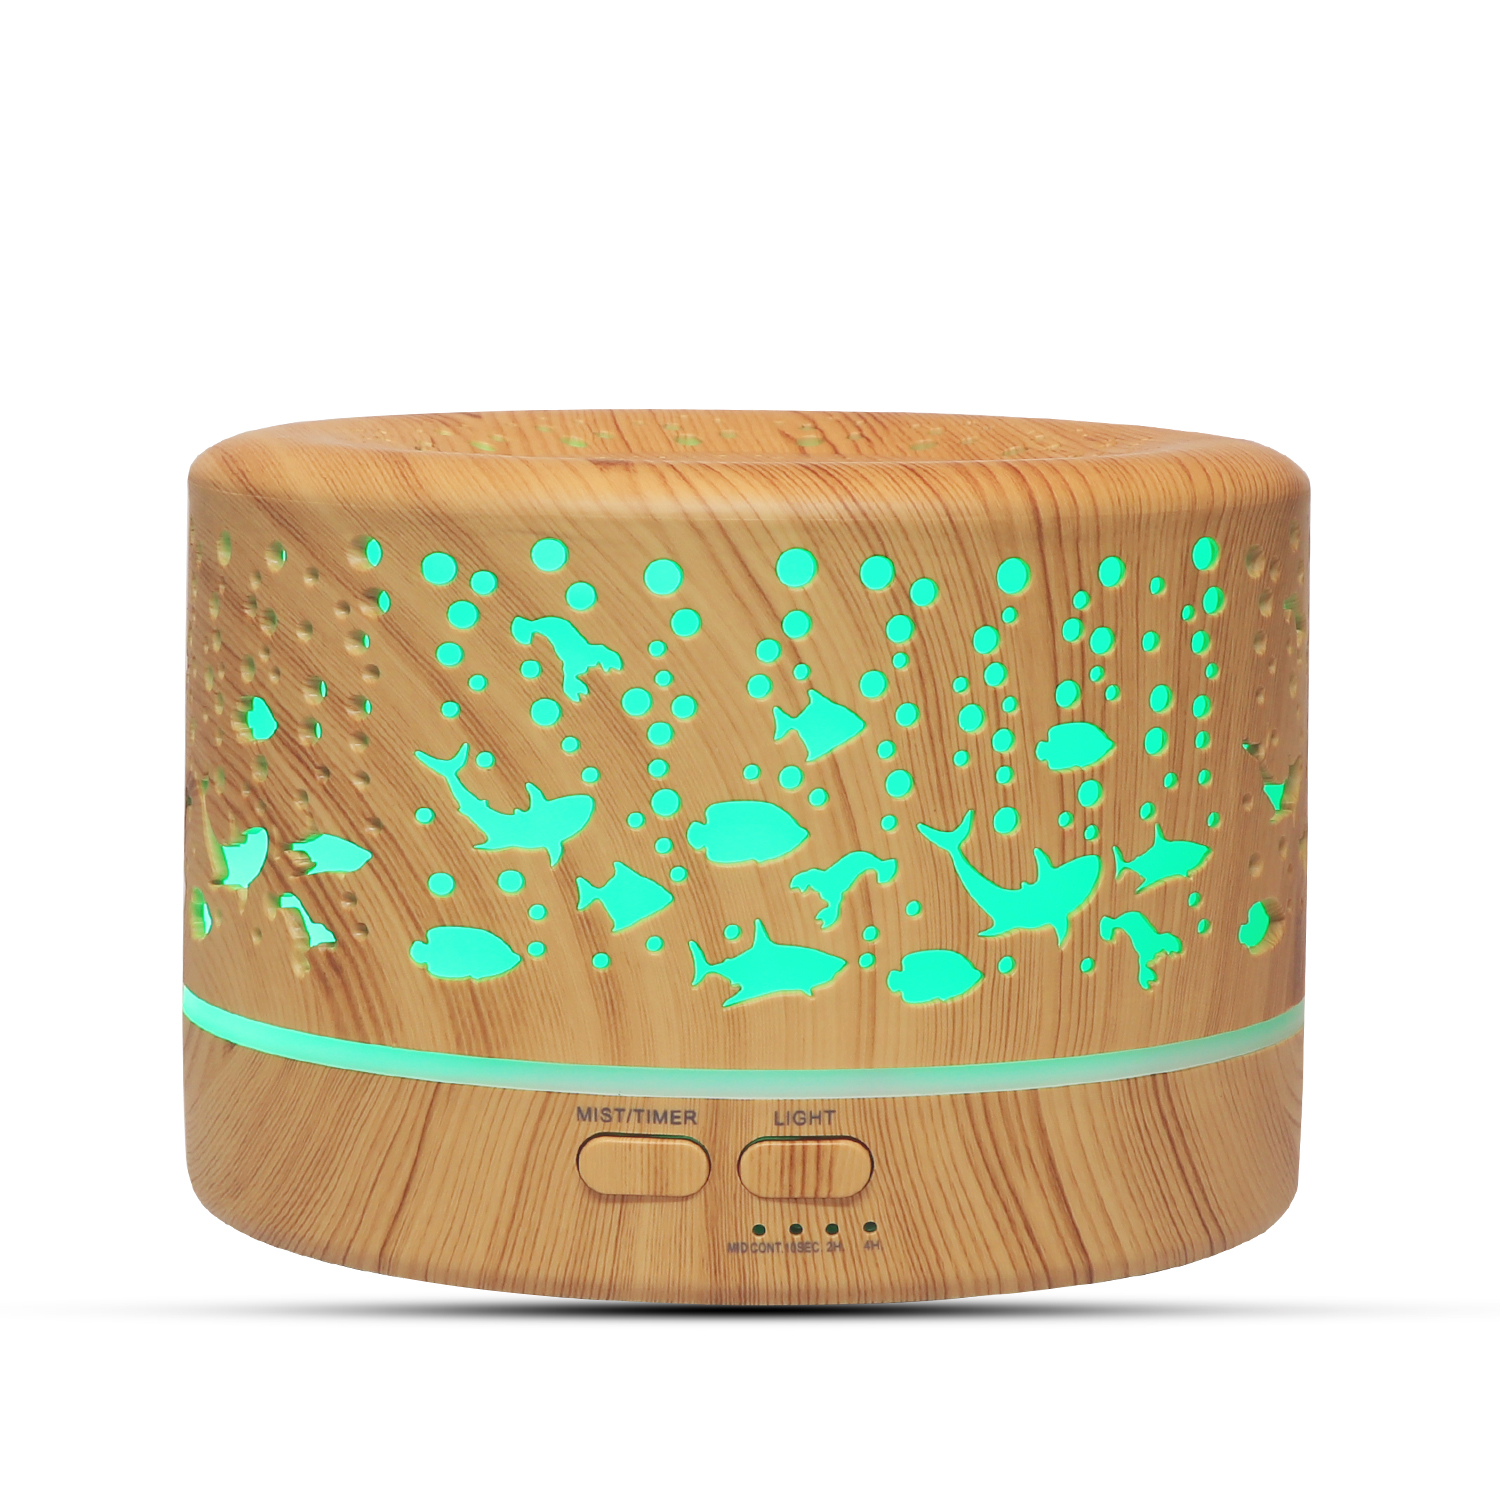 DEKAXI 700ml Wood Grain Aroma Diffuser Aromatherapy Essential Oil Diffuser Ultrasonic Cool Mist Humidifier For Office Home